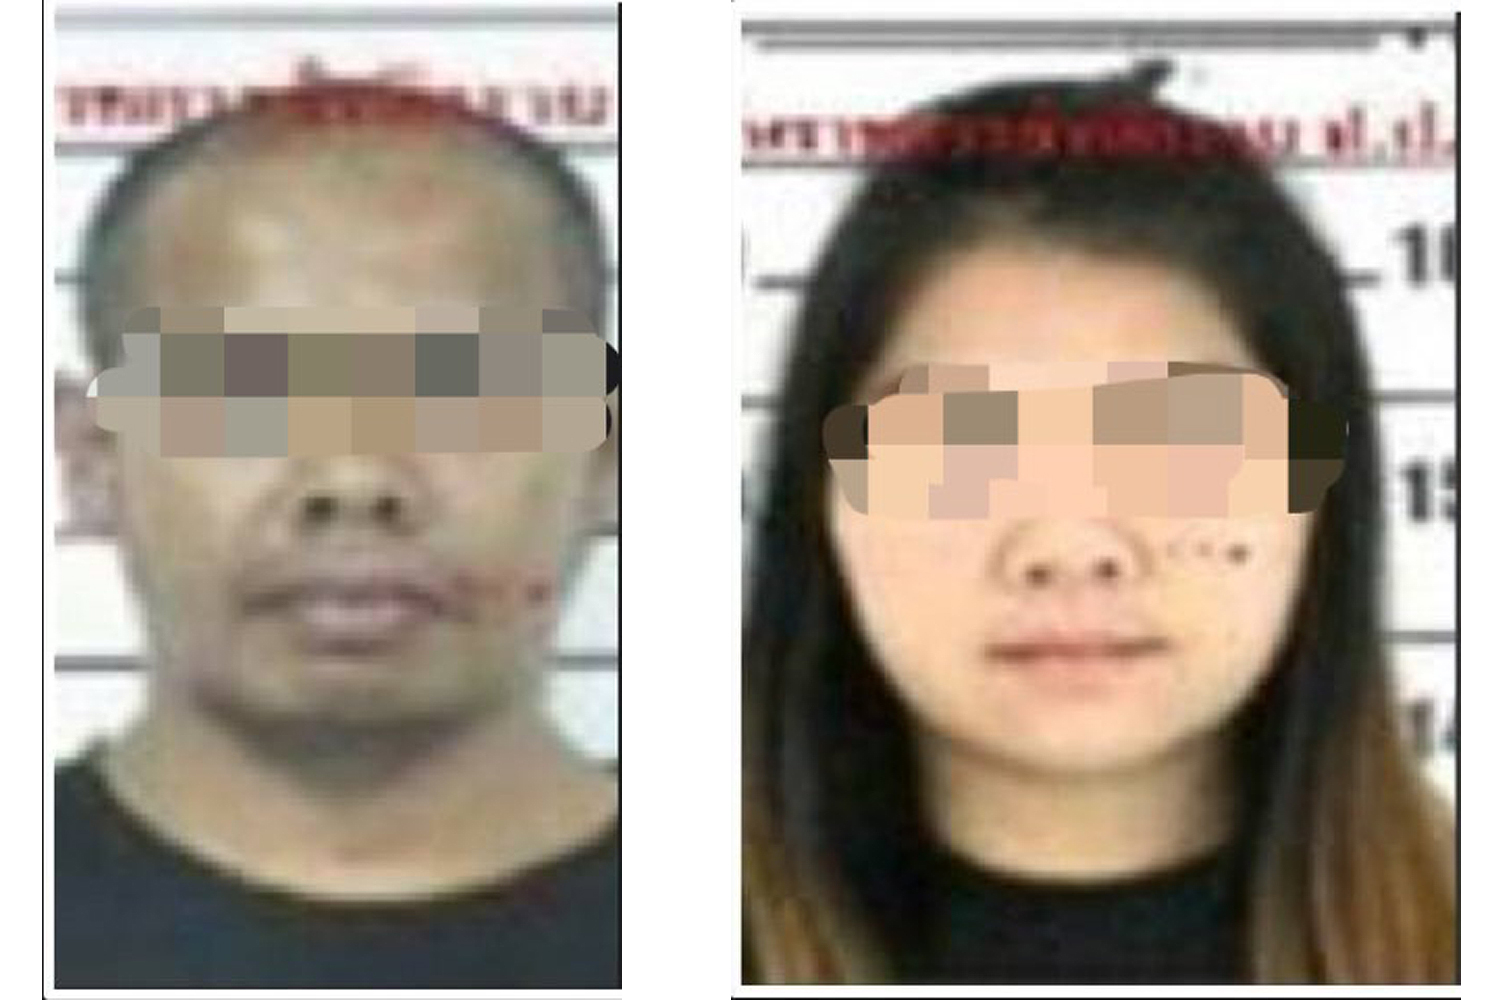 Photos of the two drug suspects - Phayao, left, and Sureerat, right - provided by the Office of the Narcotics Control Board. (Supplied)